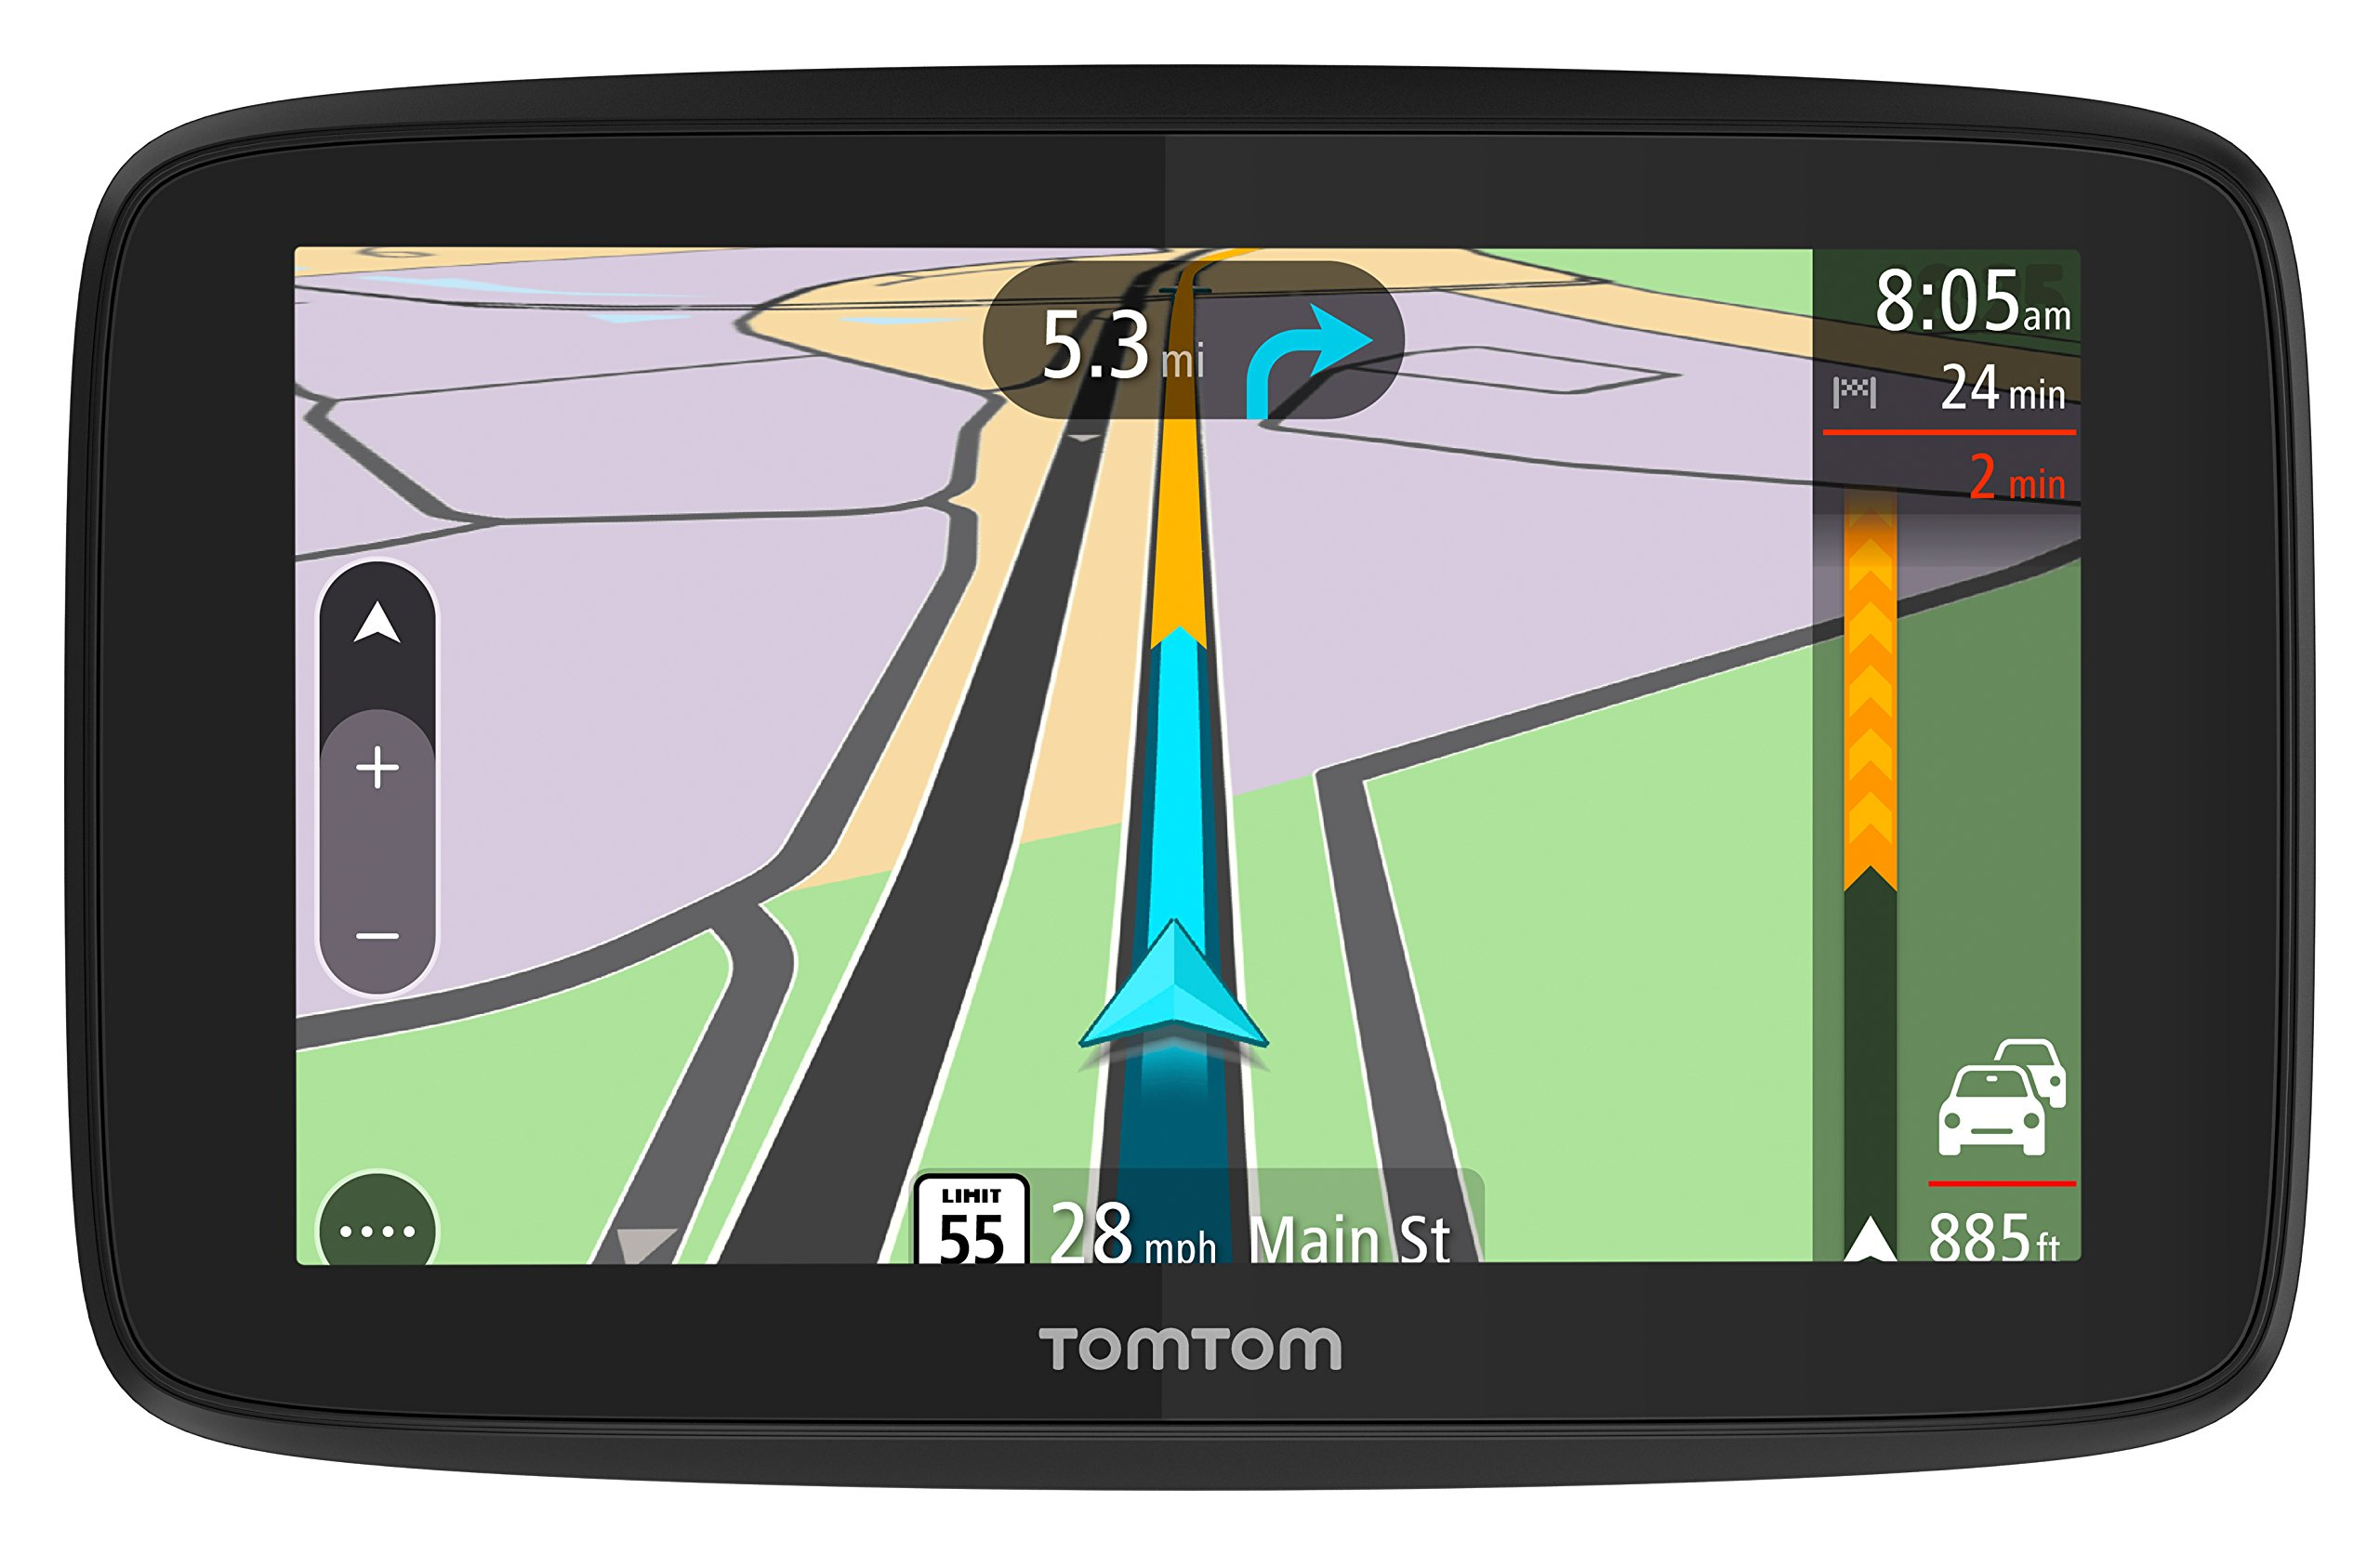 Tomtom Trucker 520 5-Inch Gps Navigation Device For Trucks With Wi-Fi Connectivity, Smartphone Services, And Free Lifetime Traffic And Maps Of North America by TomTom